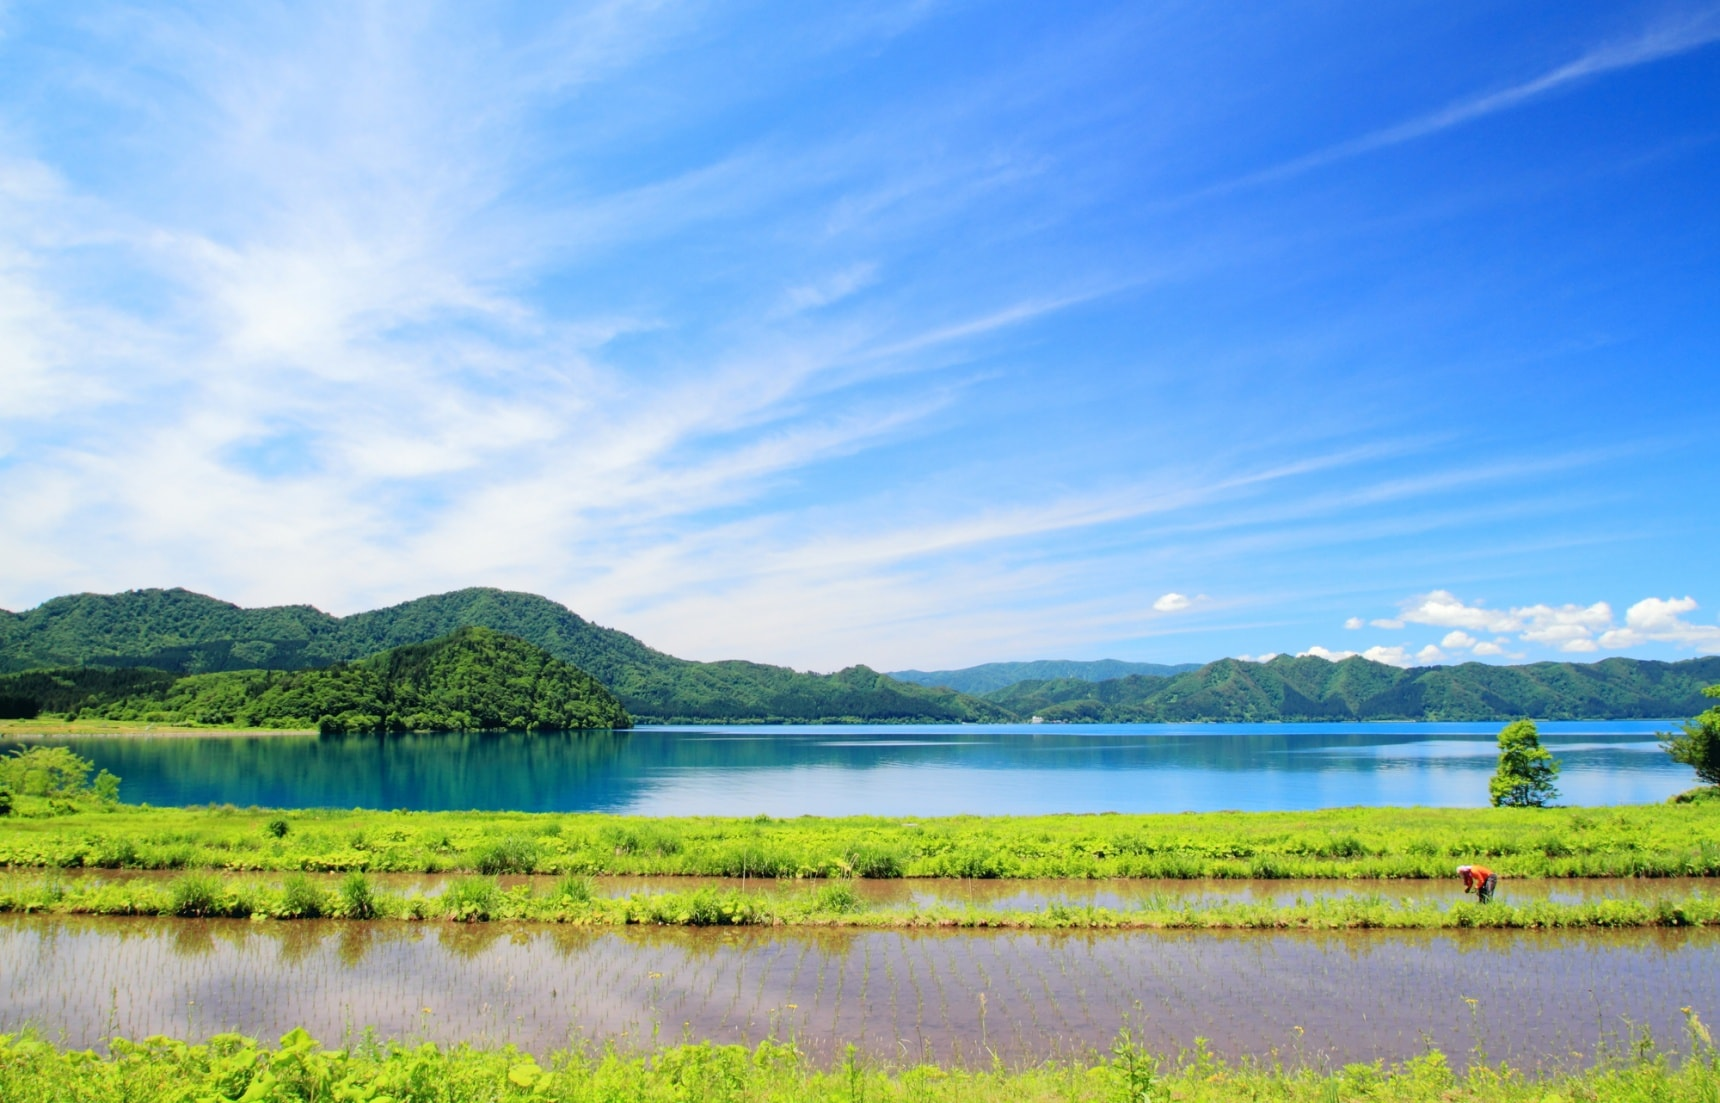 Tohoku in Summertime: Green Means Go!